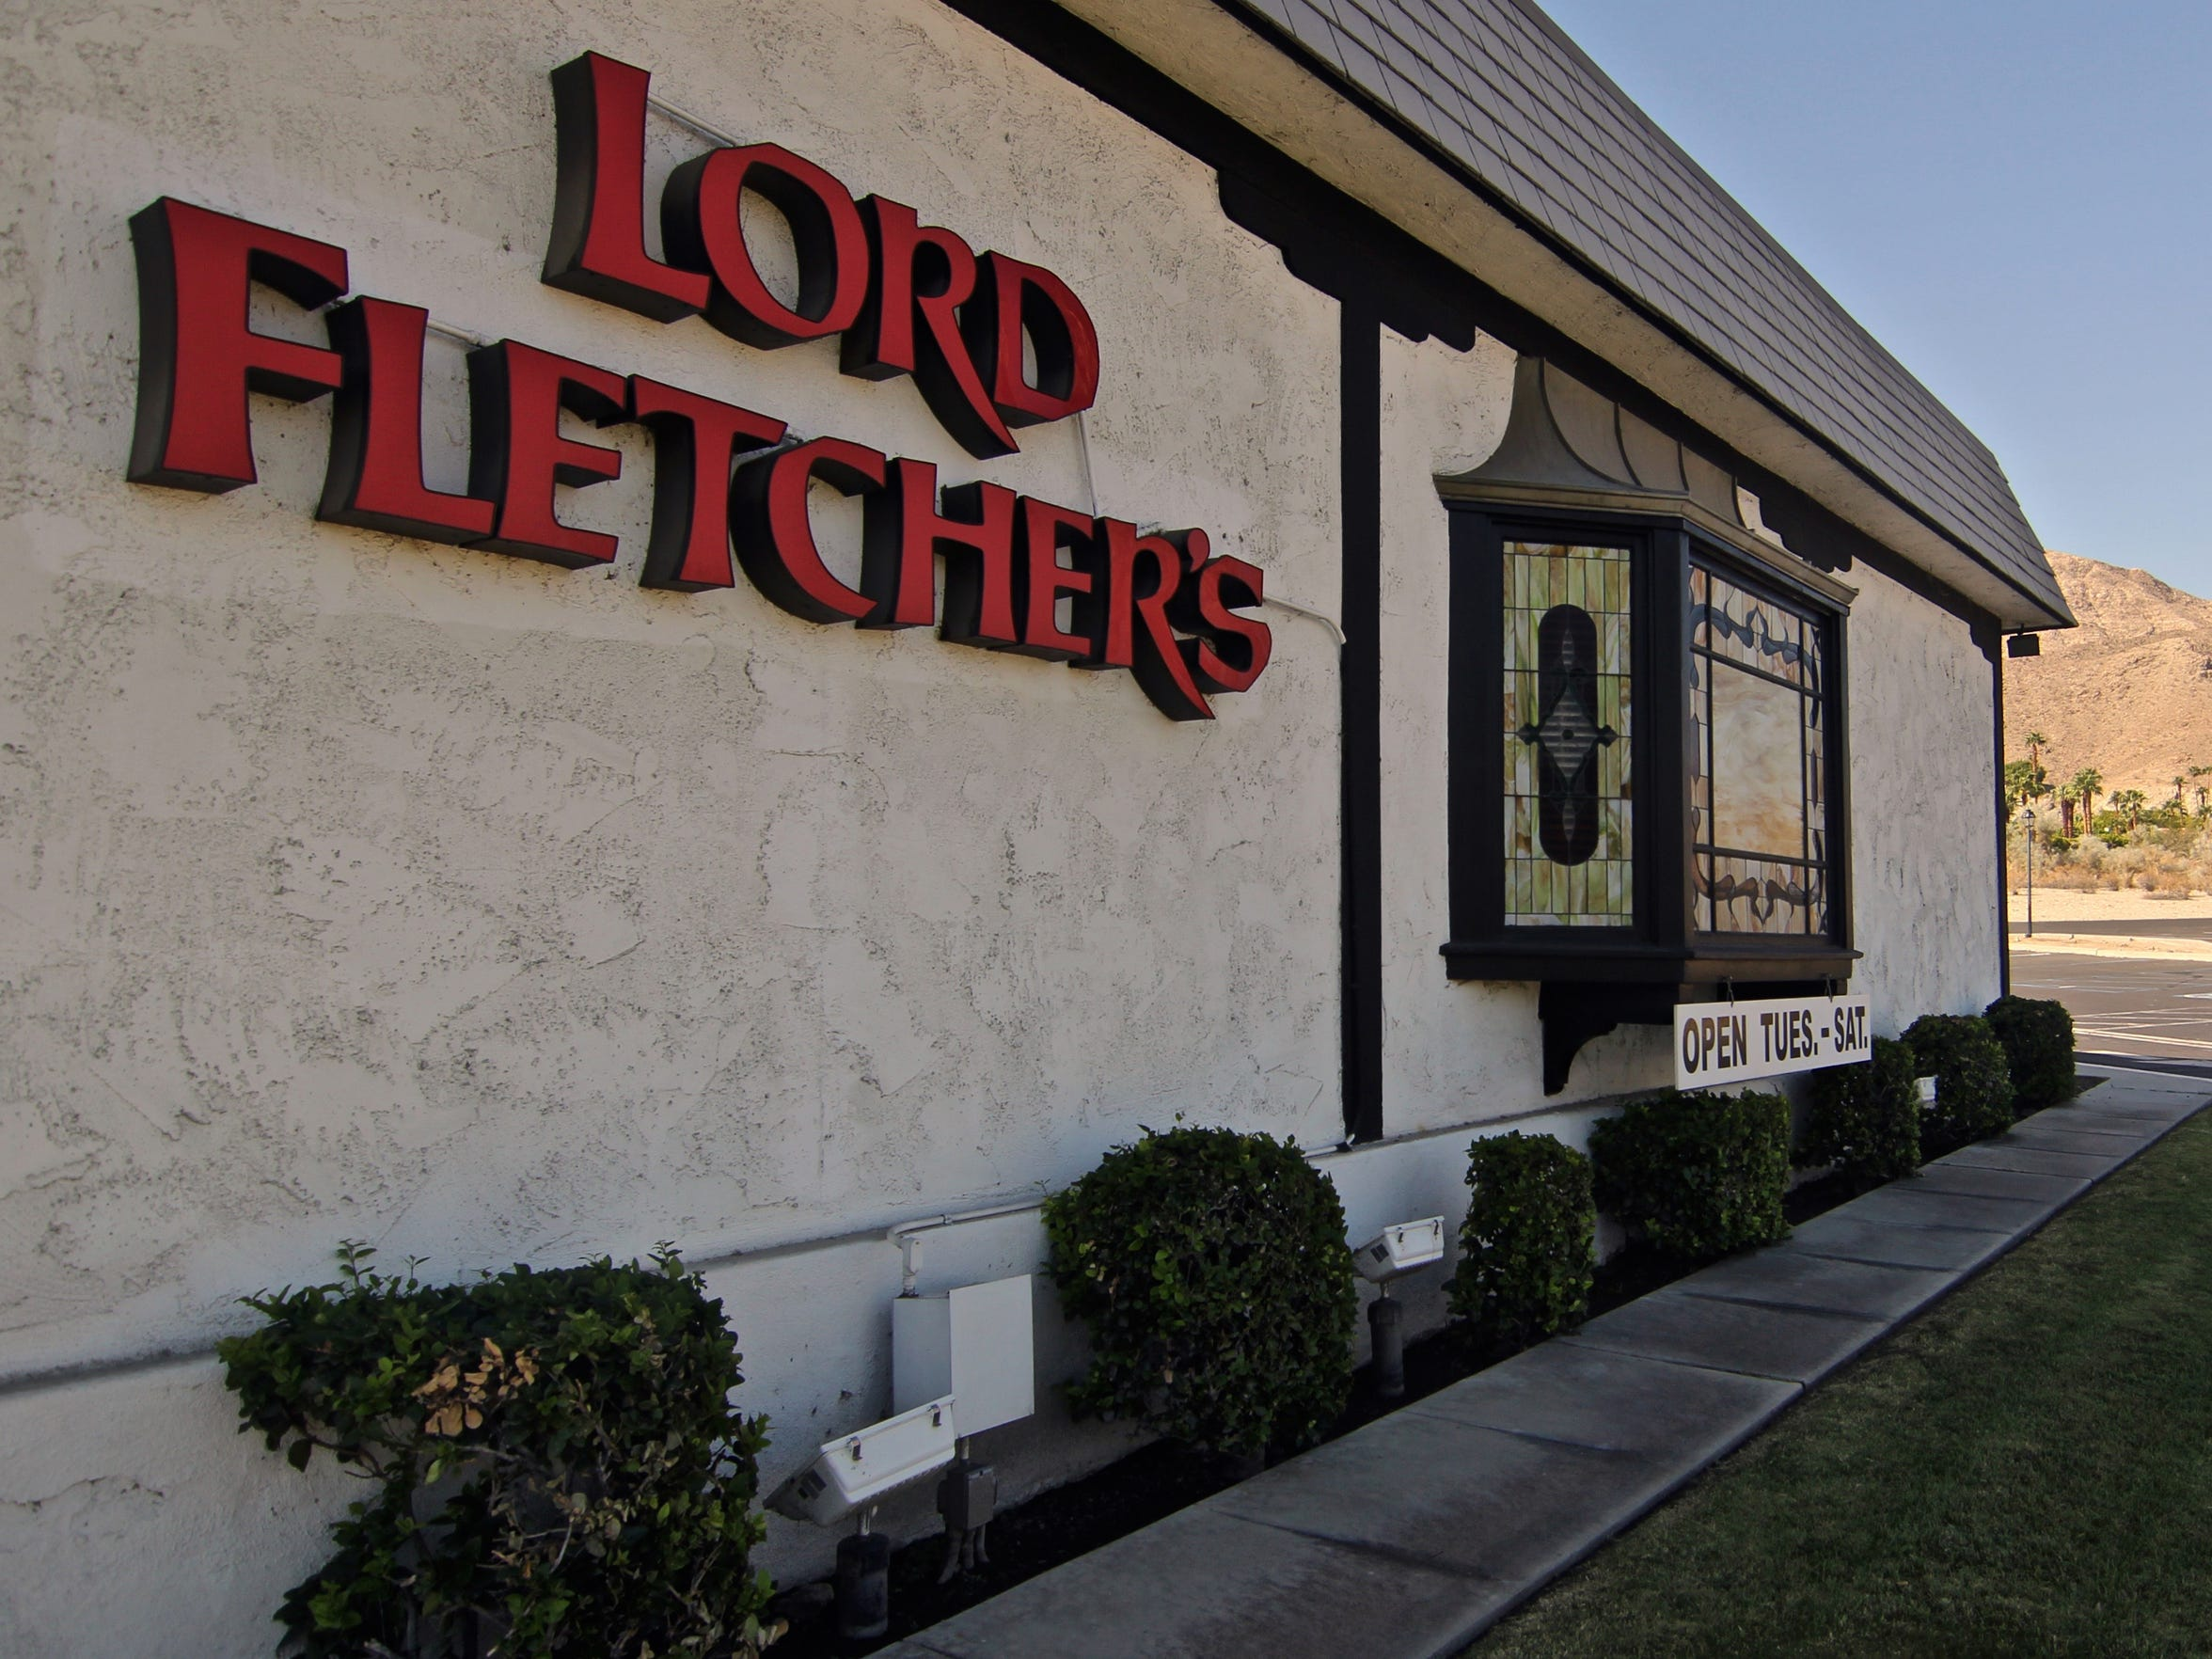 Lord Fletcher's, 70385 Highway 111, Rancho Mirage.